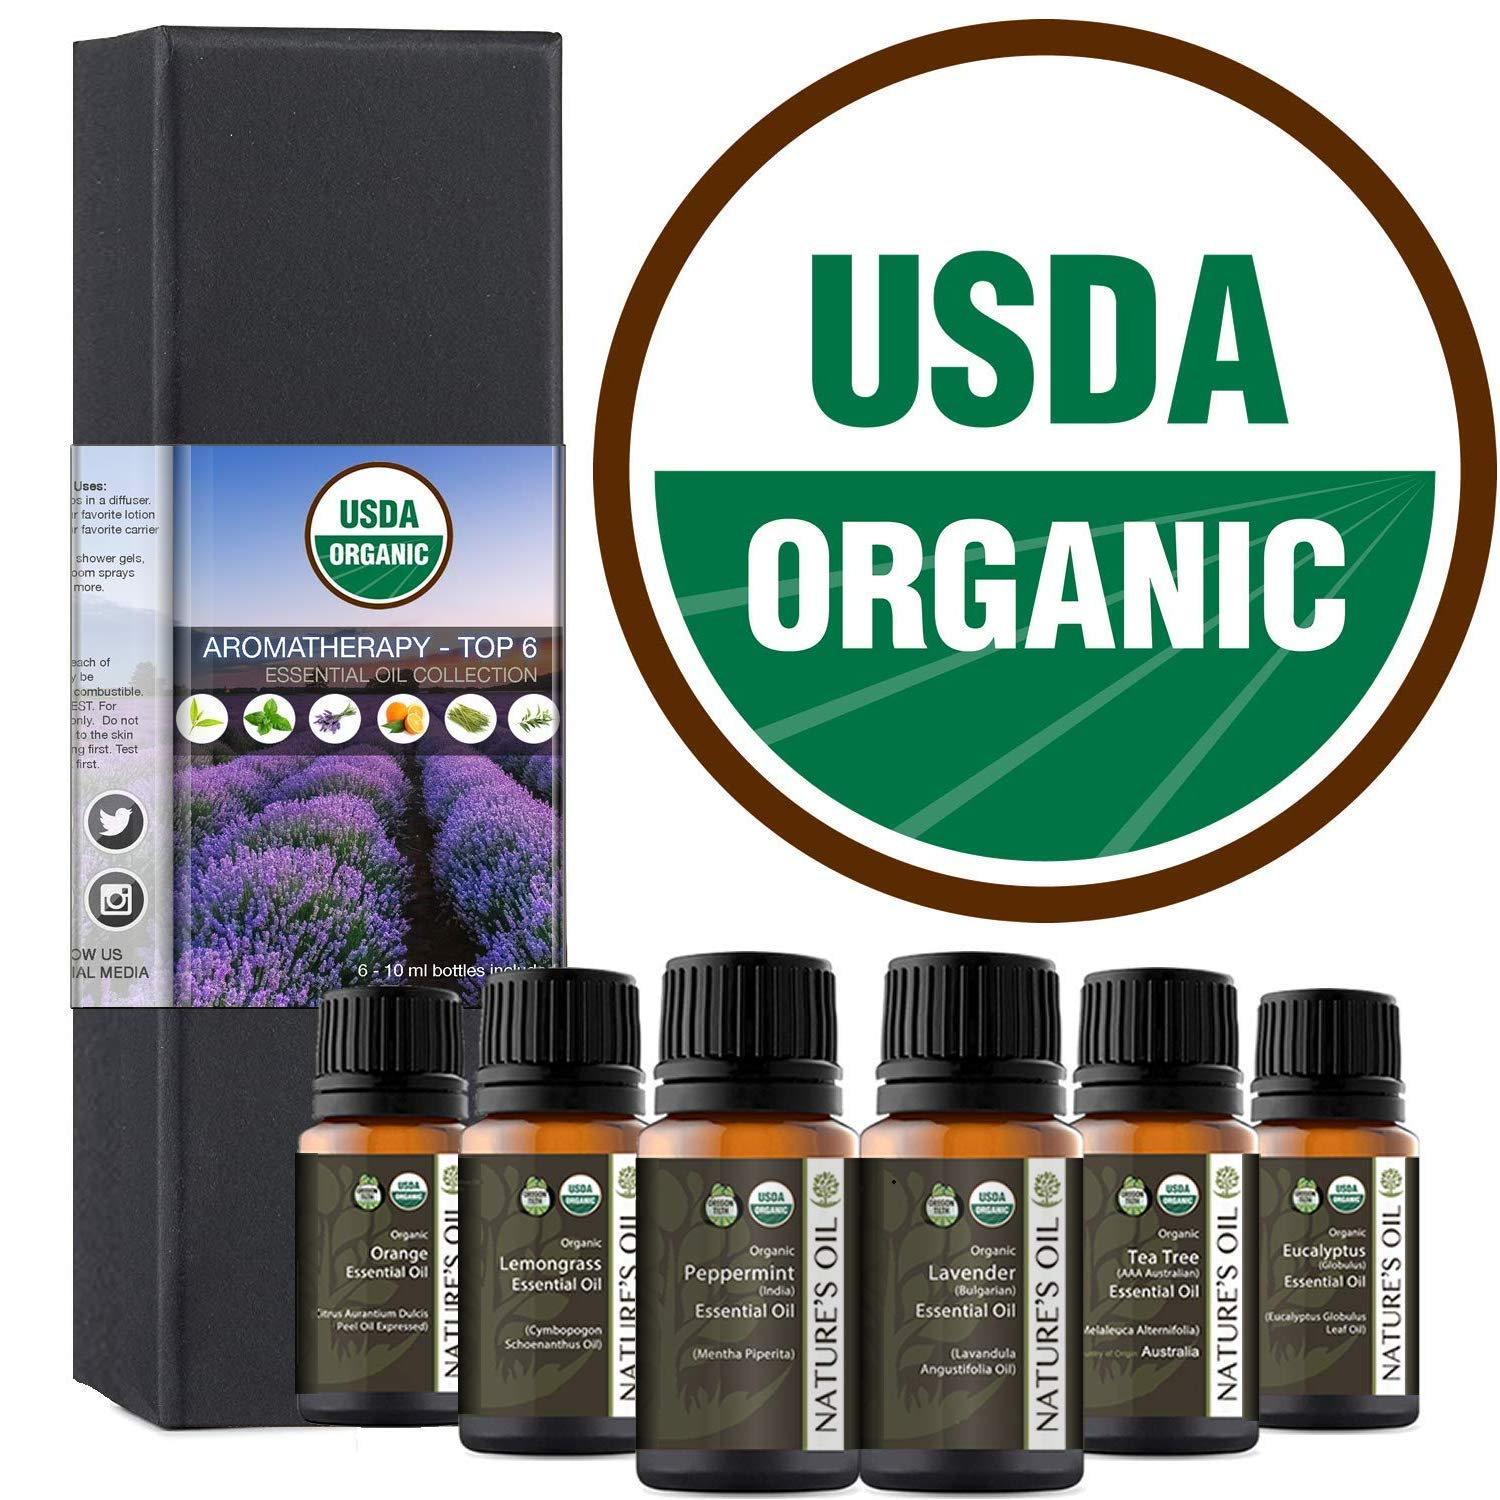 Top 6 Certified Organic Essential Oil 10ml Gift Set Therapeutic Grade Kit with Lavender, Tea Tree, Eucalyptus, Peppermint, Orange, Lemongrass by Nature's Oil